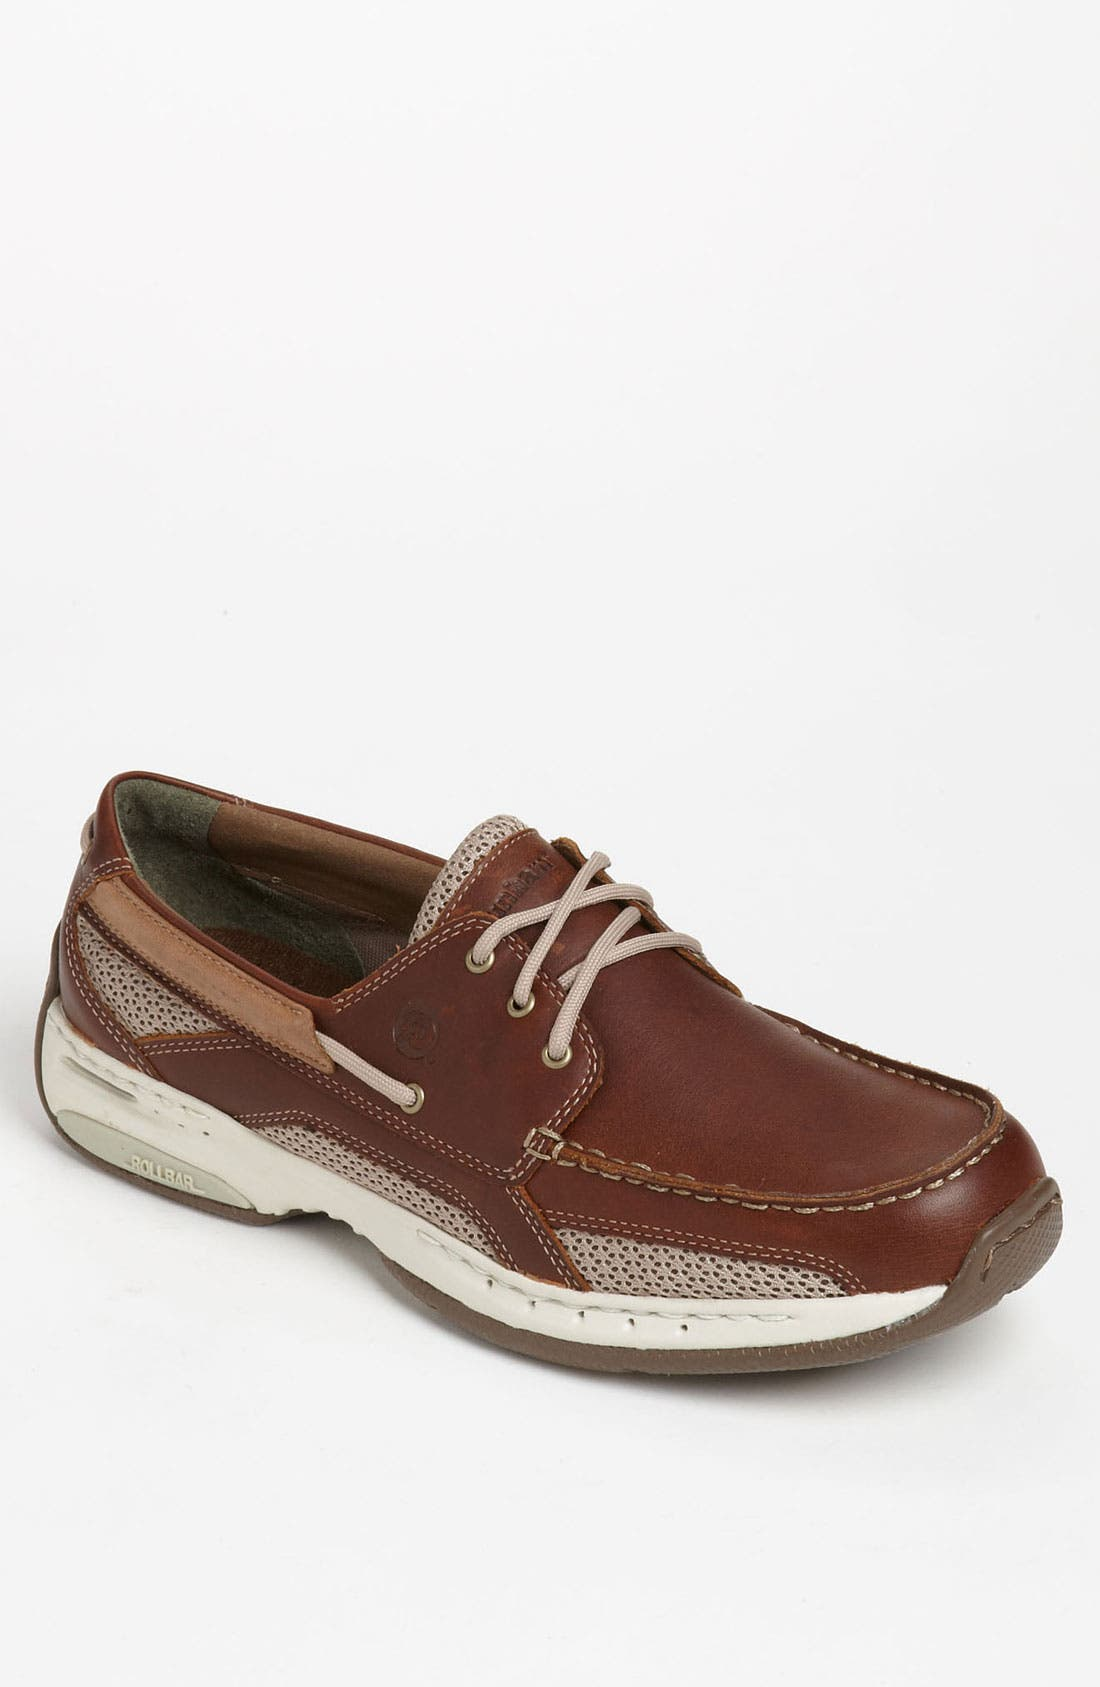 Alternate Image 1 Selected - Dunham 'Captain' Boat Shoe